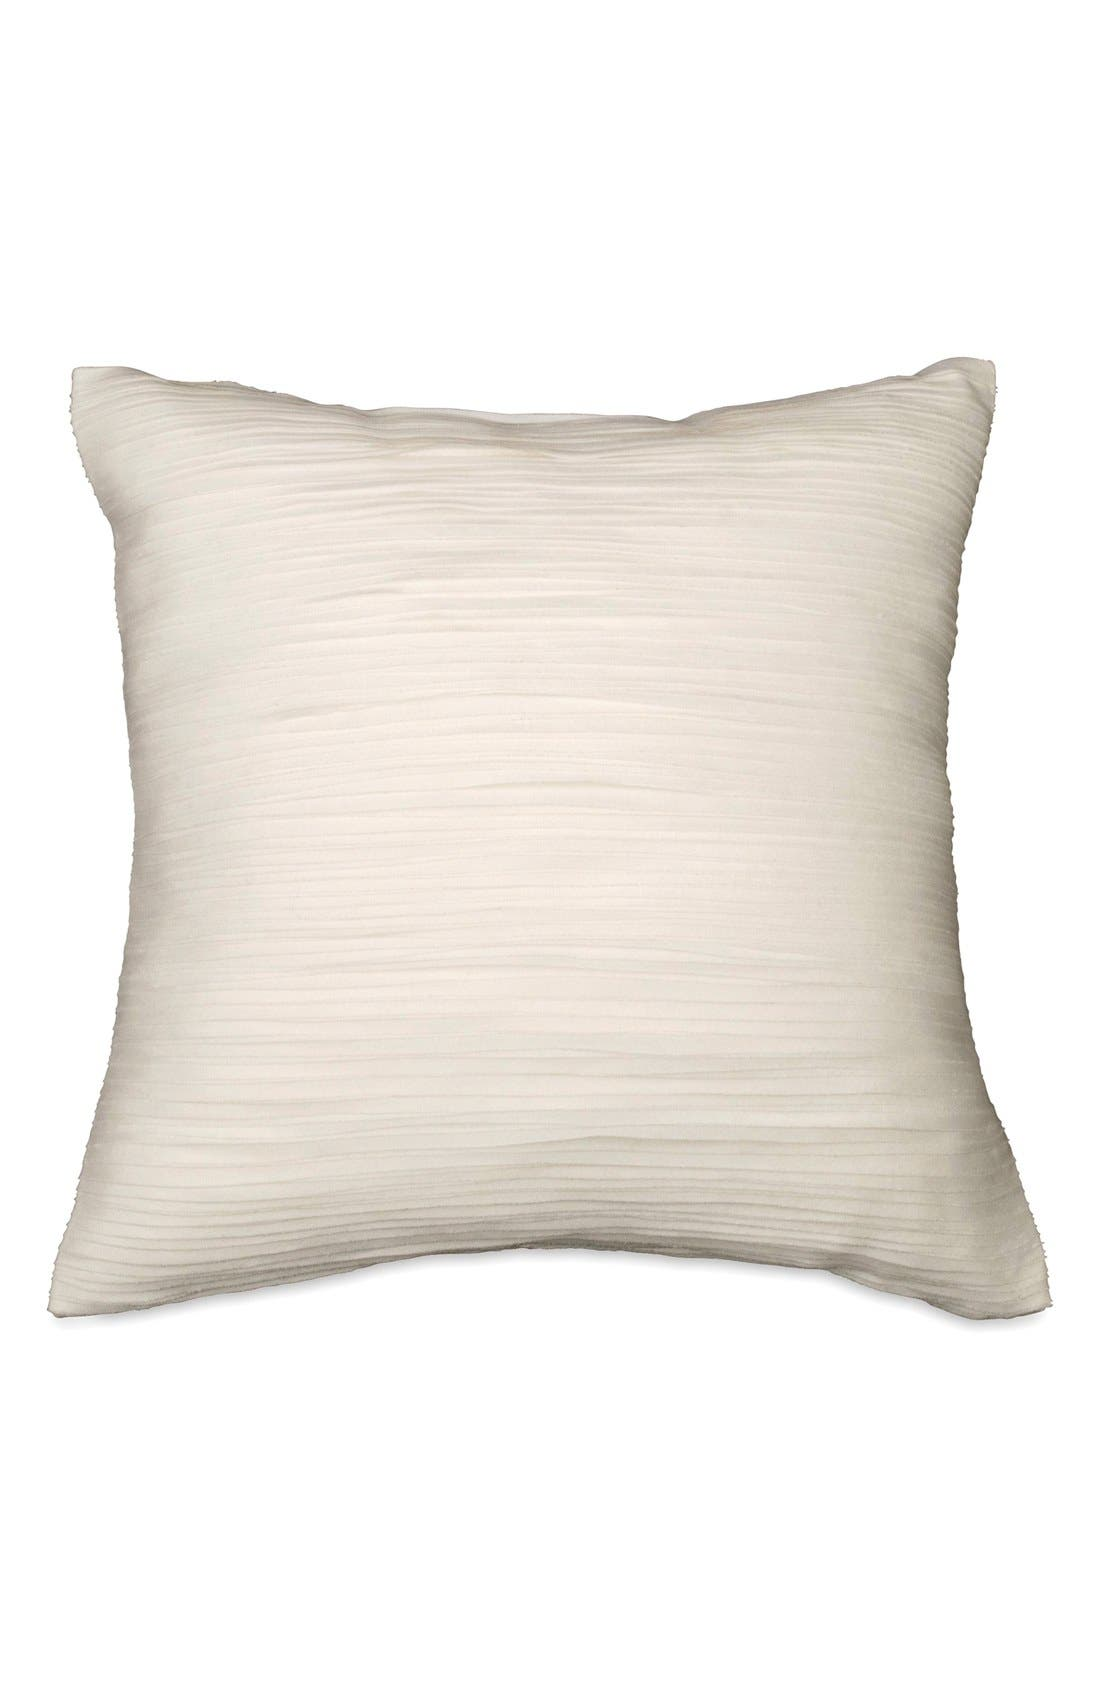 Donna Karan Collection 'Silk Essentials' Pillow,                             Main thumbnail 3, color,